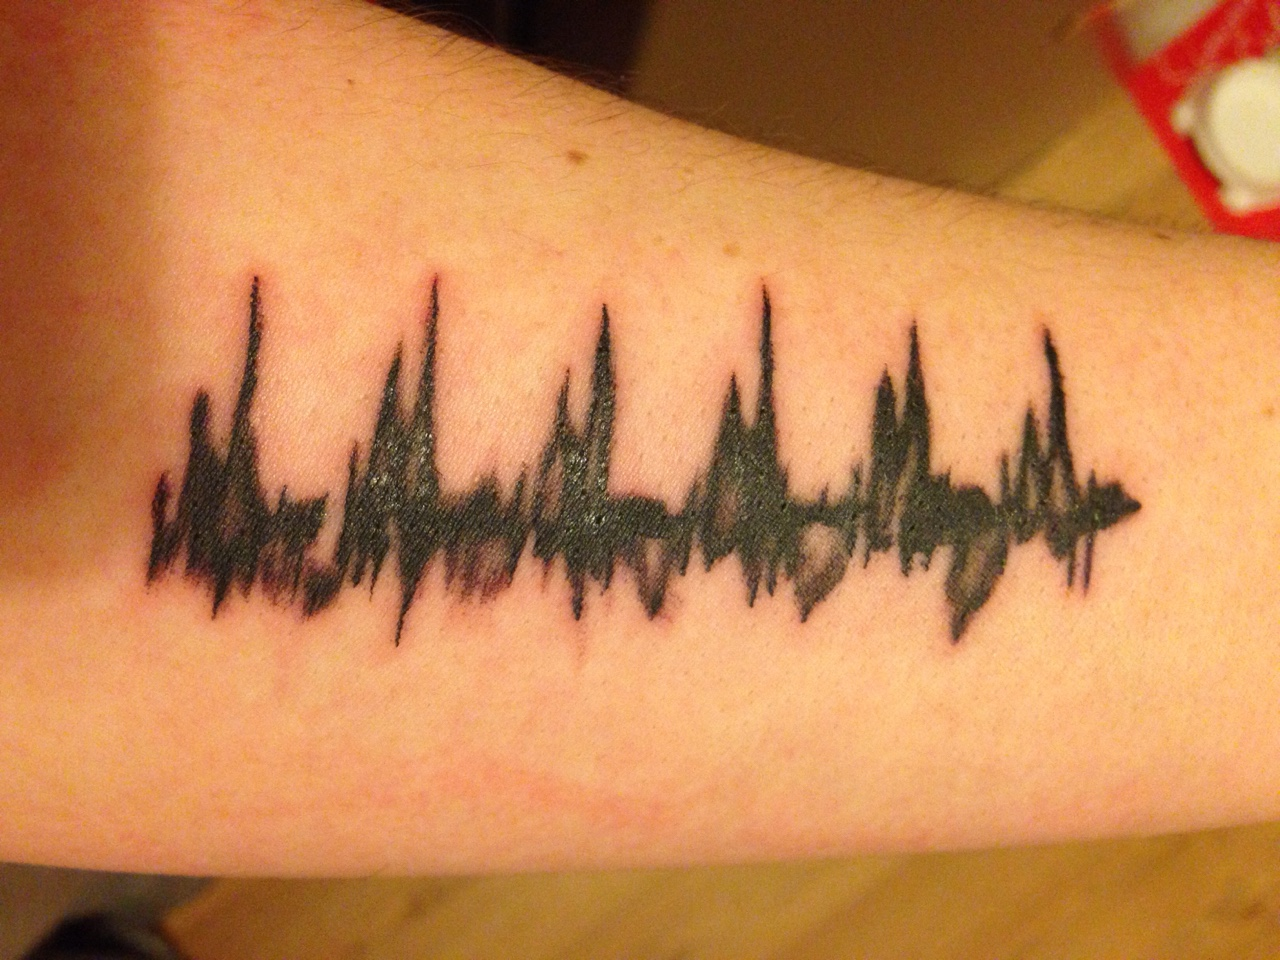 waveform heartbeat tattoo meet your miracle of boardman oh